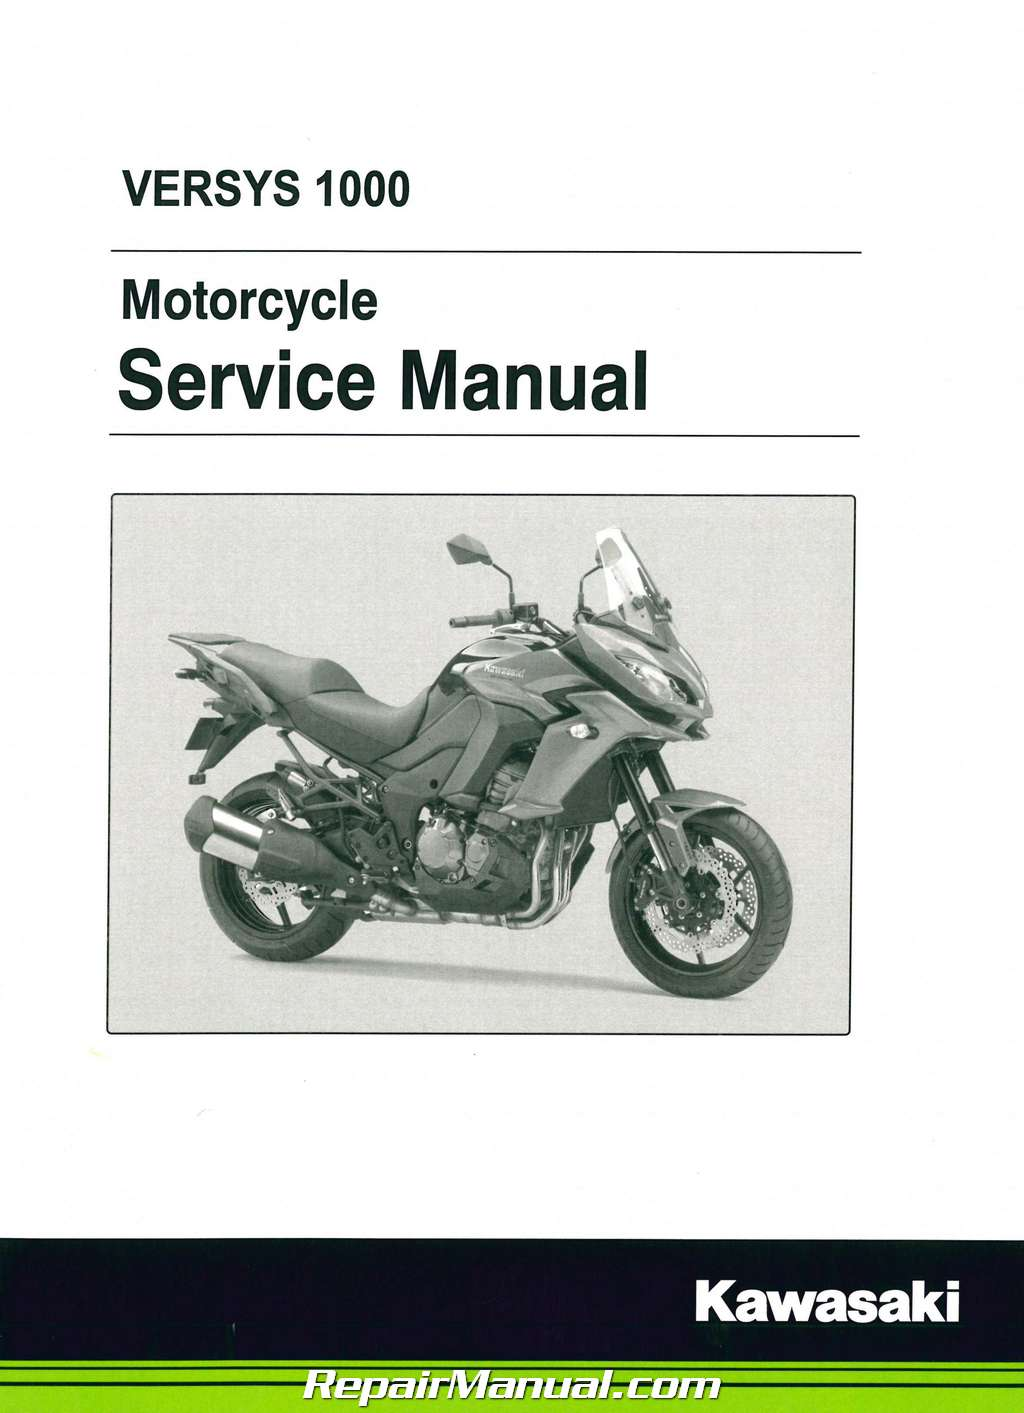 2015 kawasaki versys 1000 klz1000 motorcycle service manual rh repairmanual com 2008 kawasaki versys owners manual pdf 2008 Kawasaki Versys with Givi Windscreen